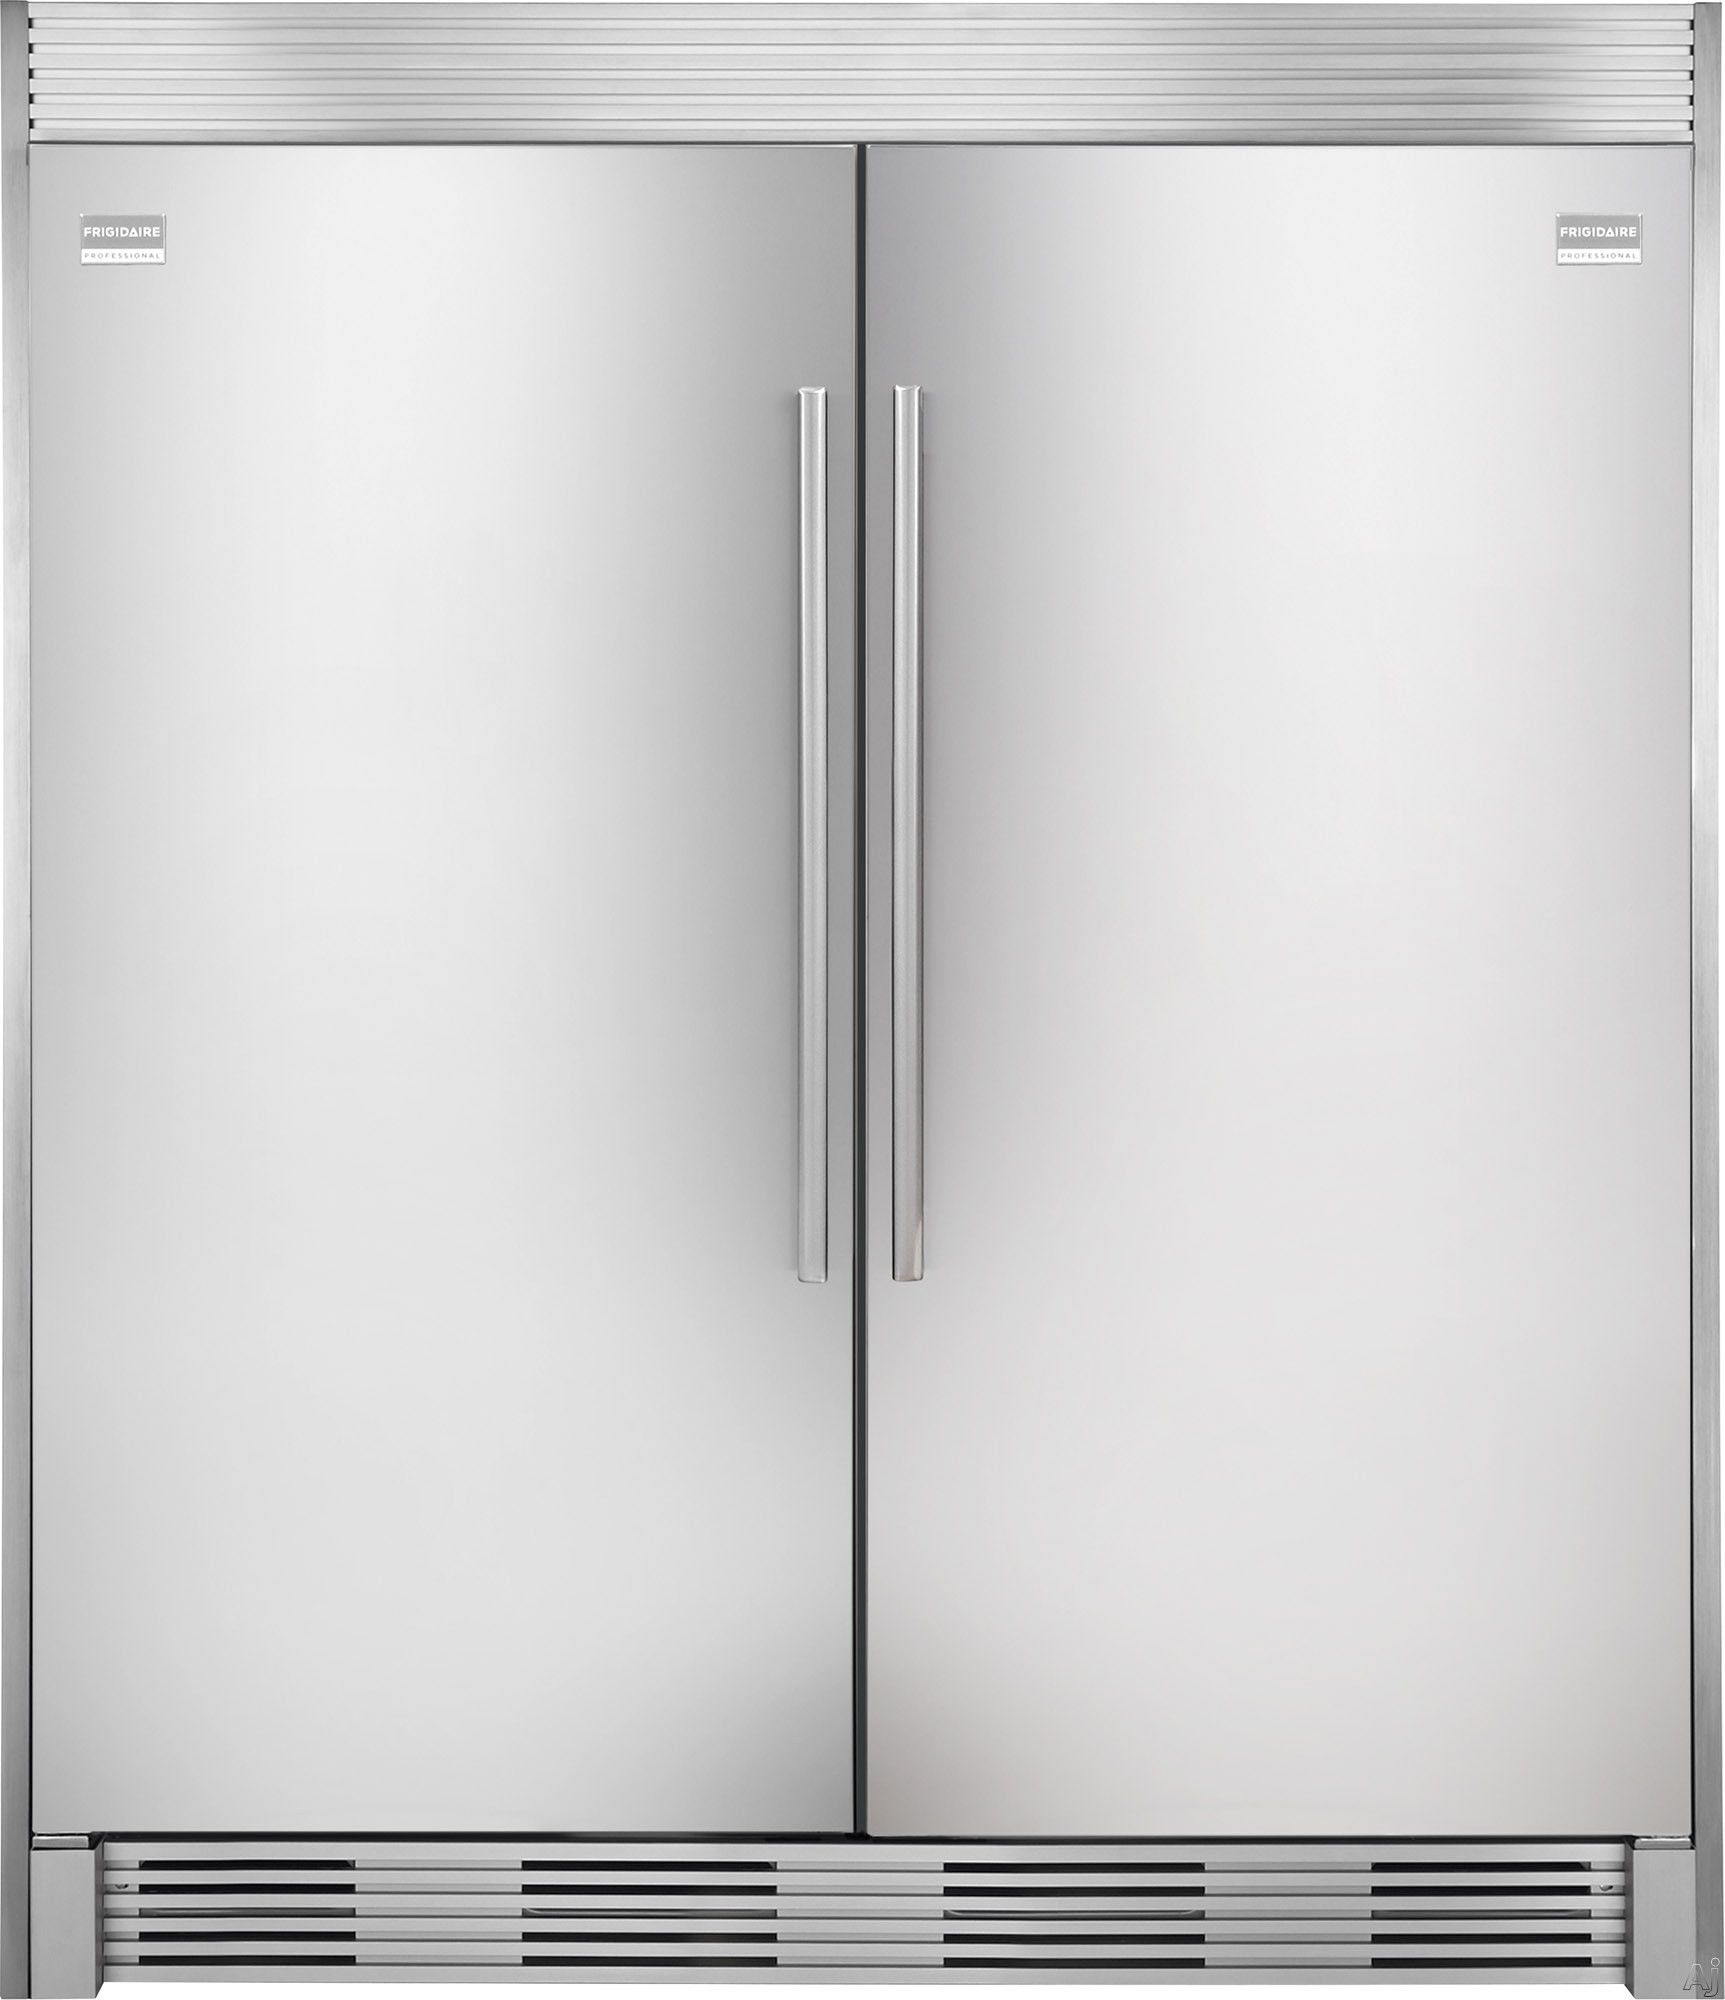 Frigidaire Fpru19F8Qf 32 Built In All Refrigerator With 2 Spacewise Adjustable Glass